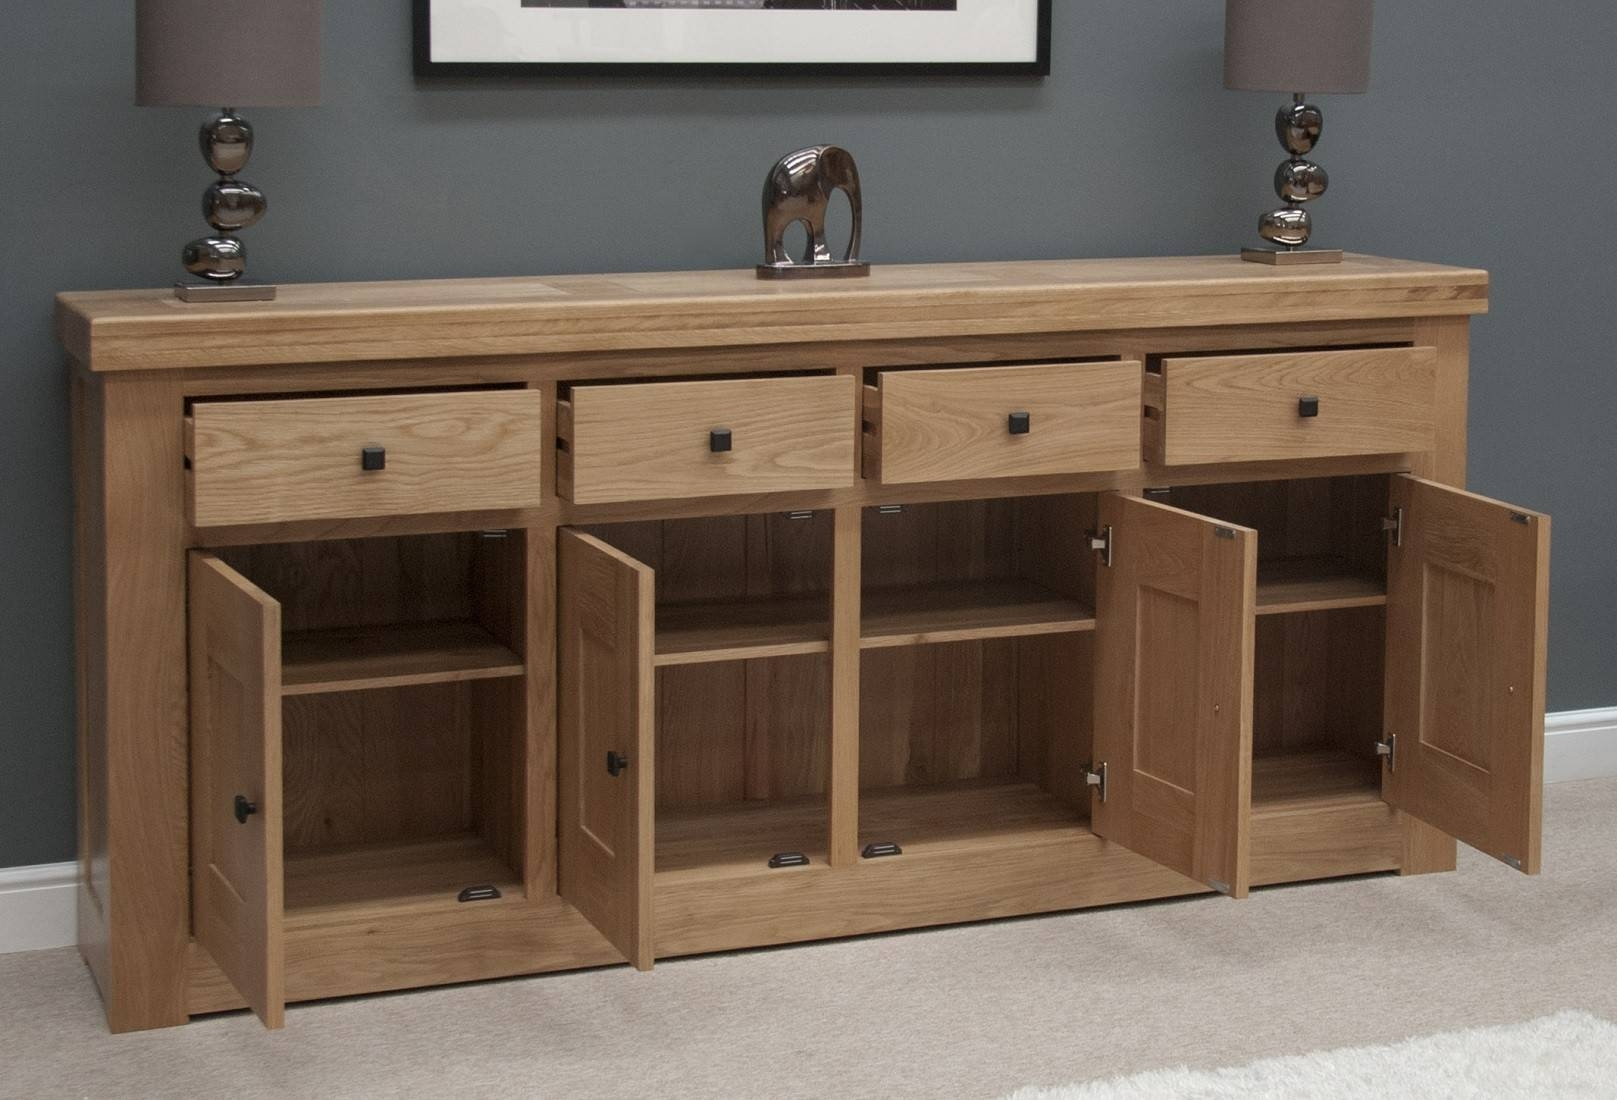 French Bordeaux Oak Extra Large 4 Door Sideboard | Oak Furniture Uk pertaining to Rustic Oak Large Sideboards (Image 7 of 15)